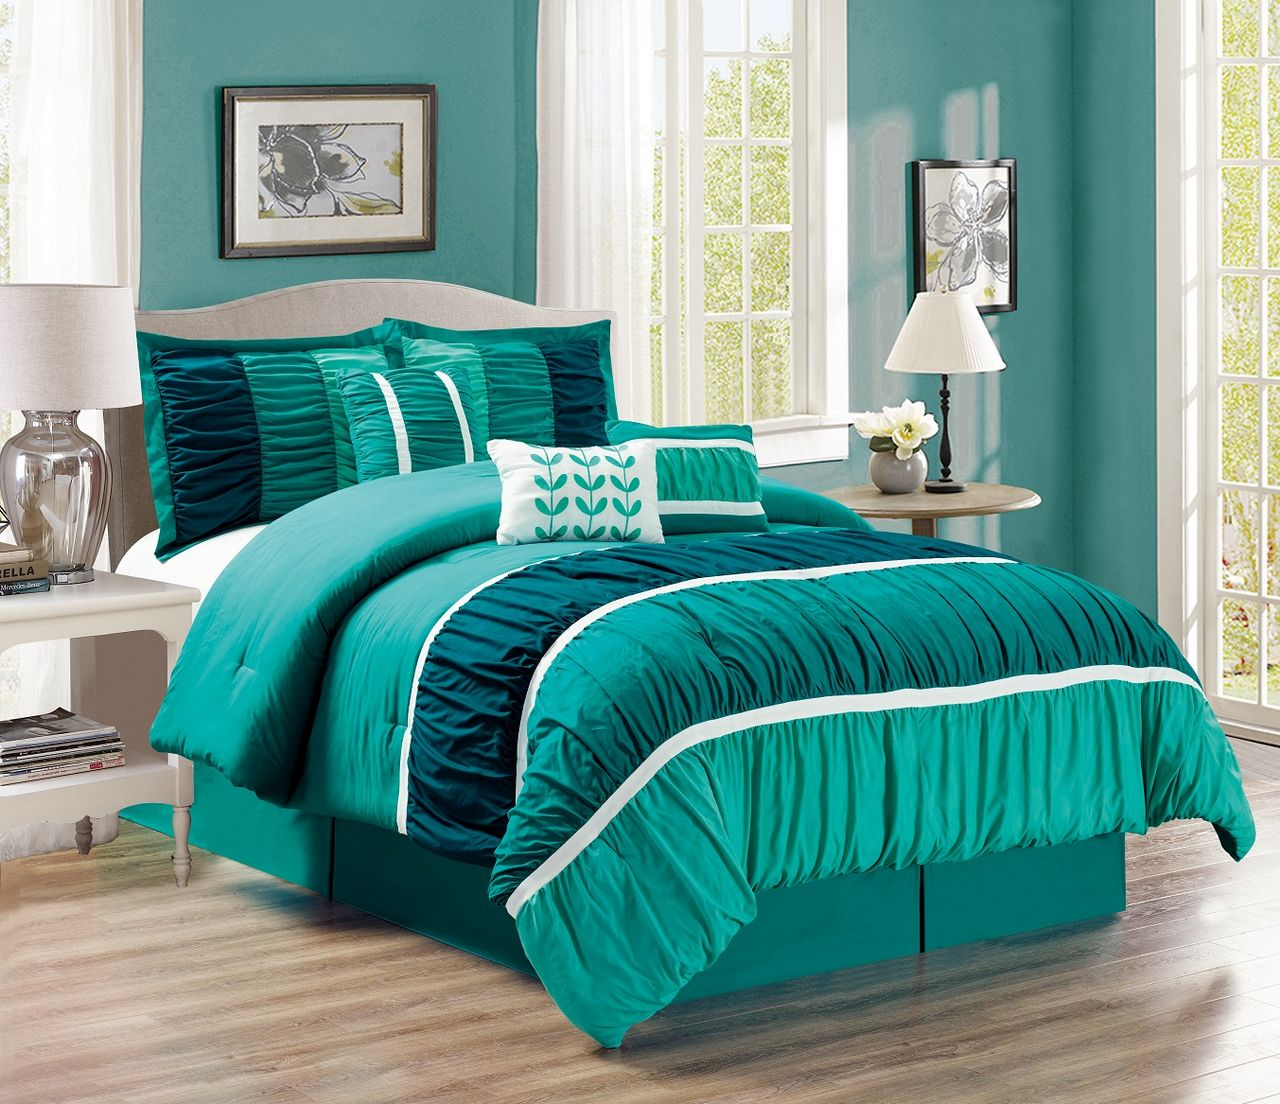 7 Piece Ruched Teal/Green Comforter Set